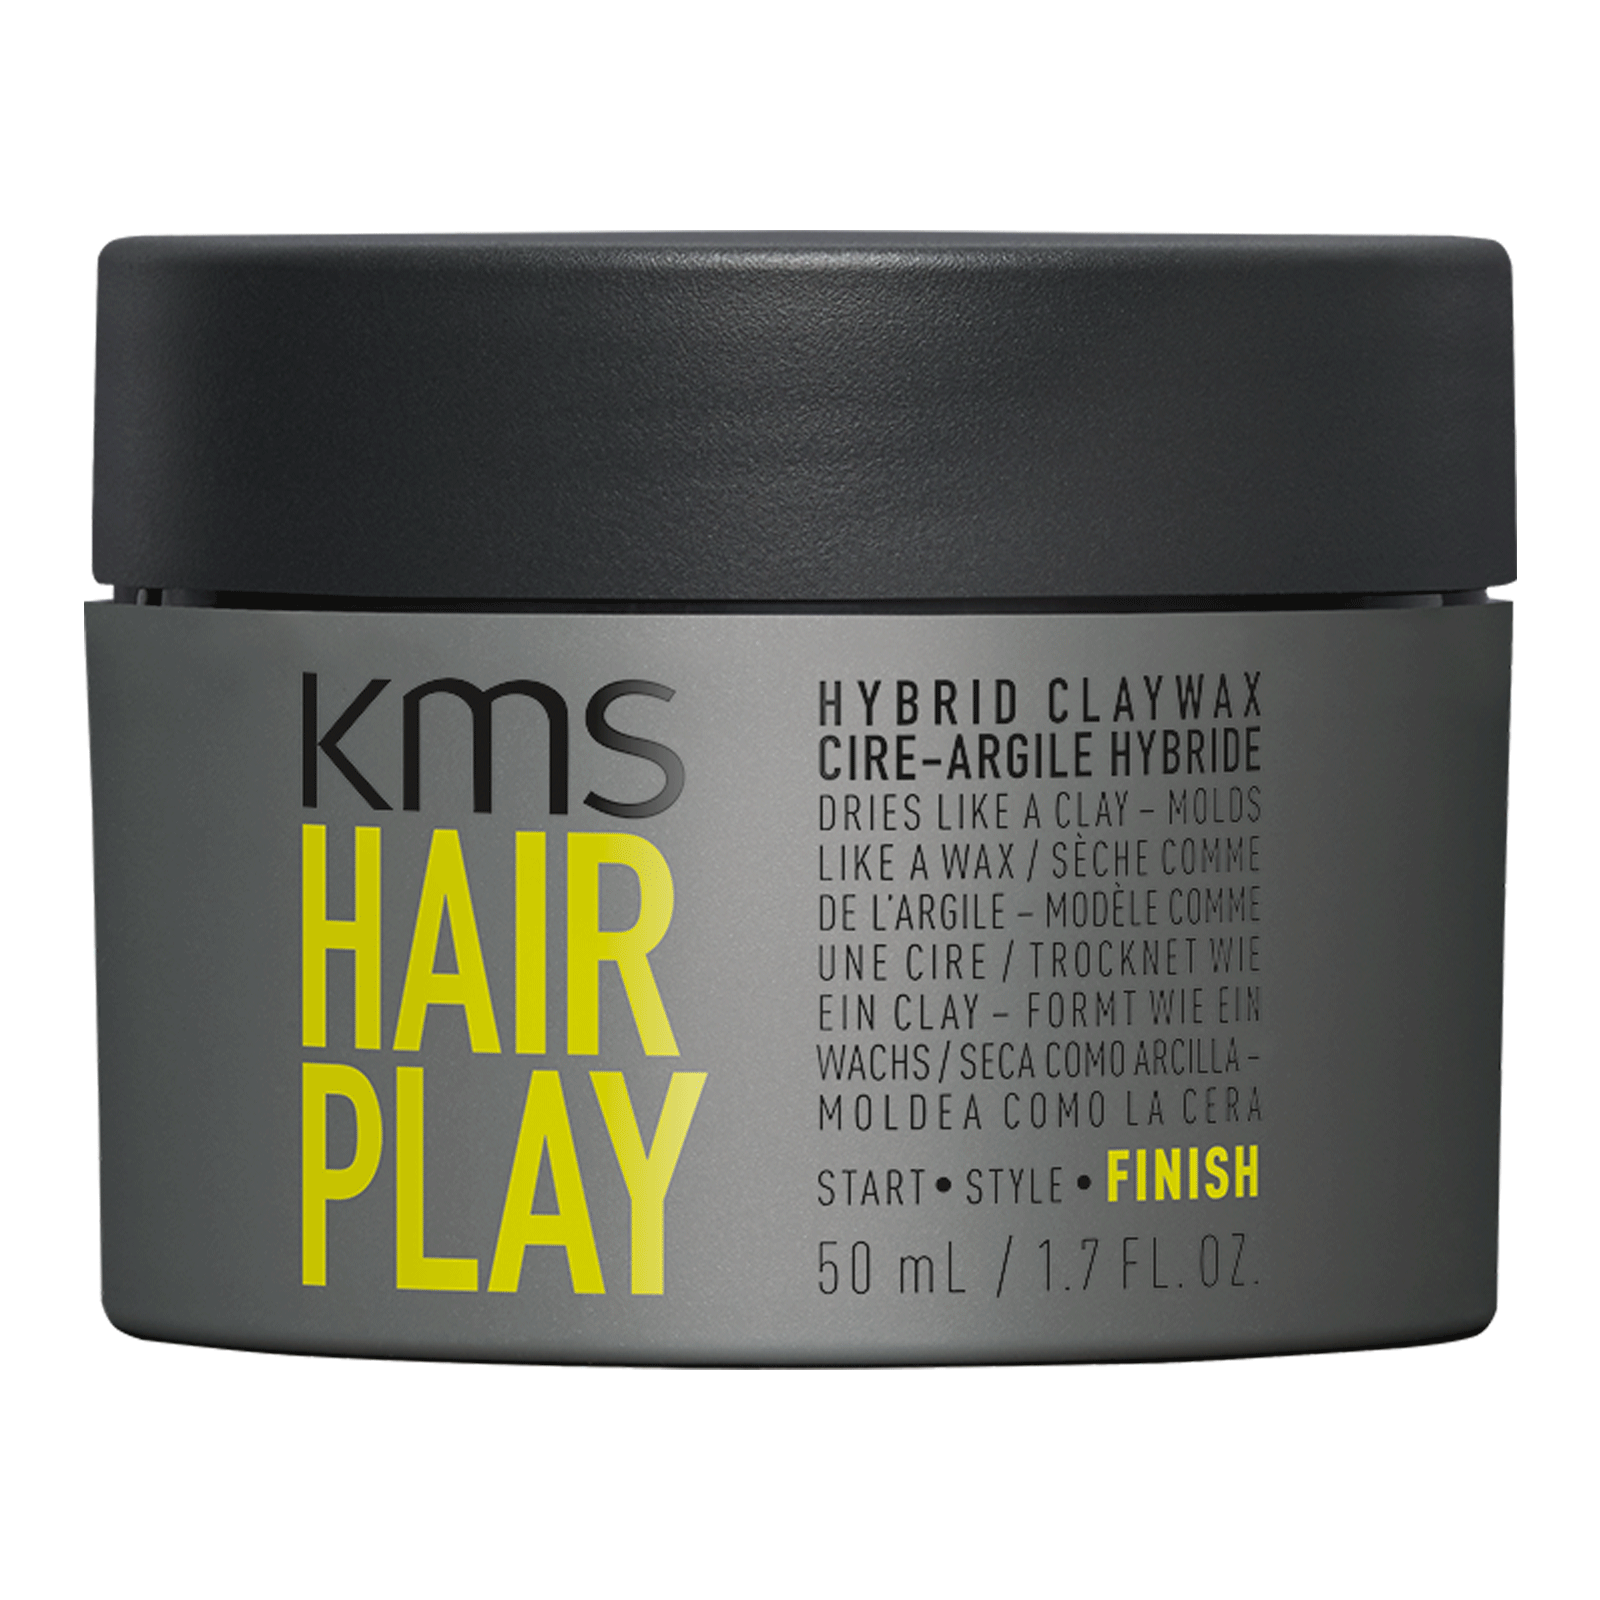 HAIRPLAY - Hybrid Claywax